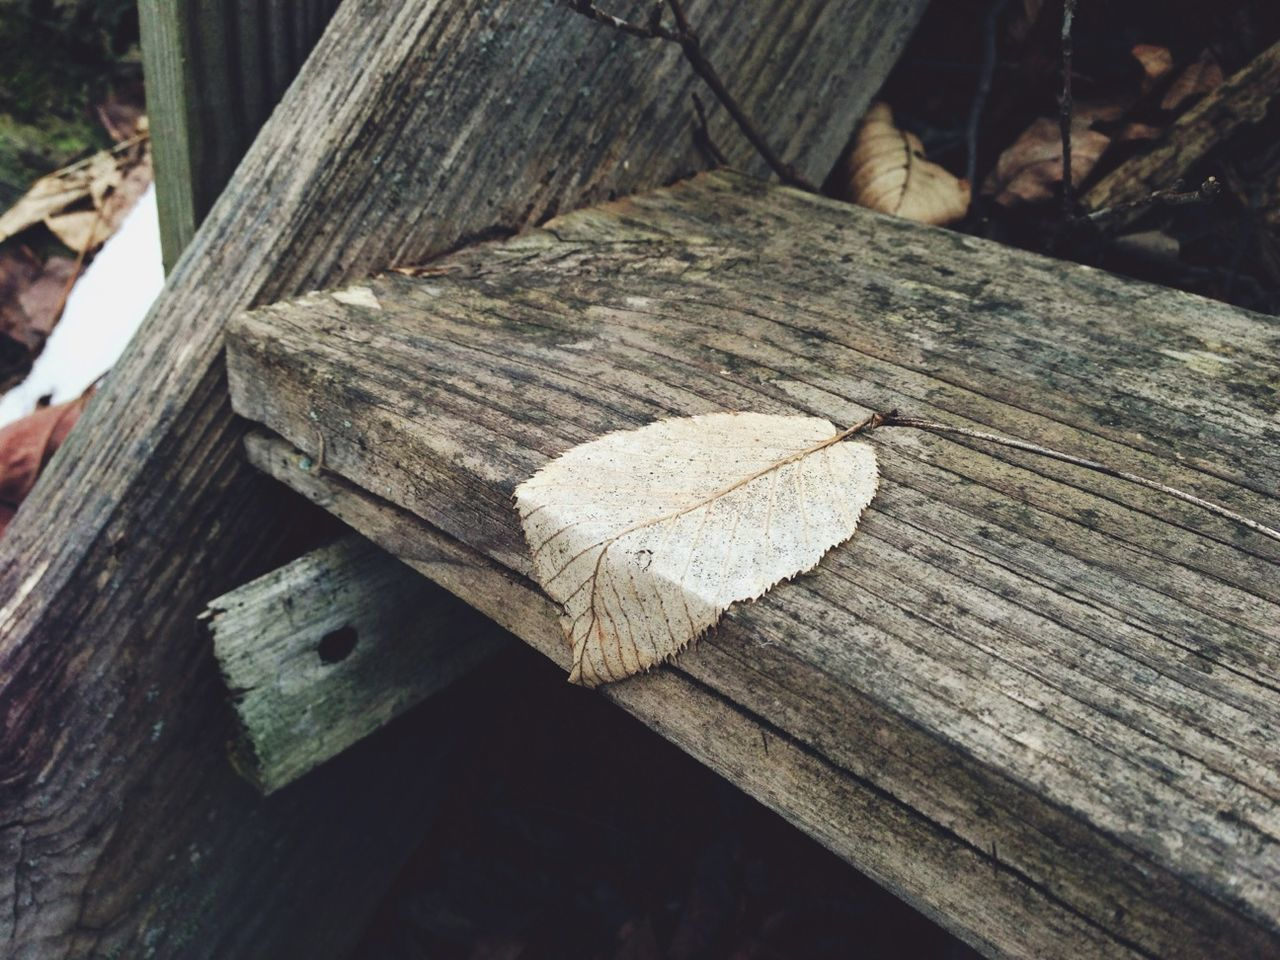 Close-up of a leaf on wooden stair